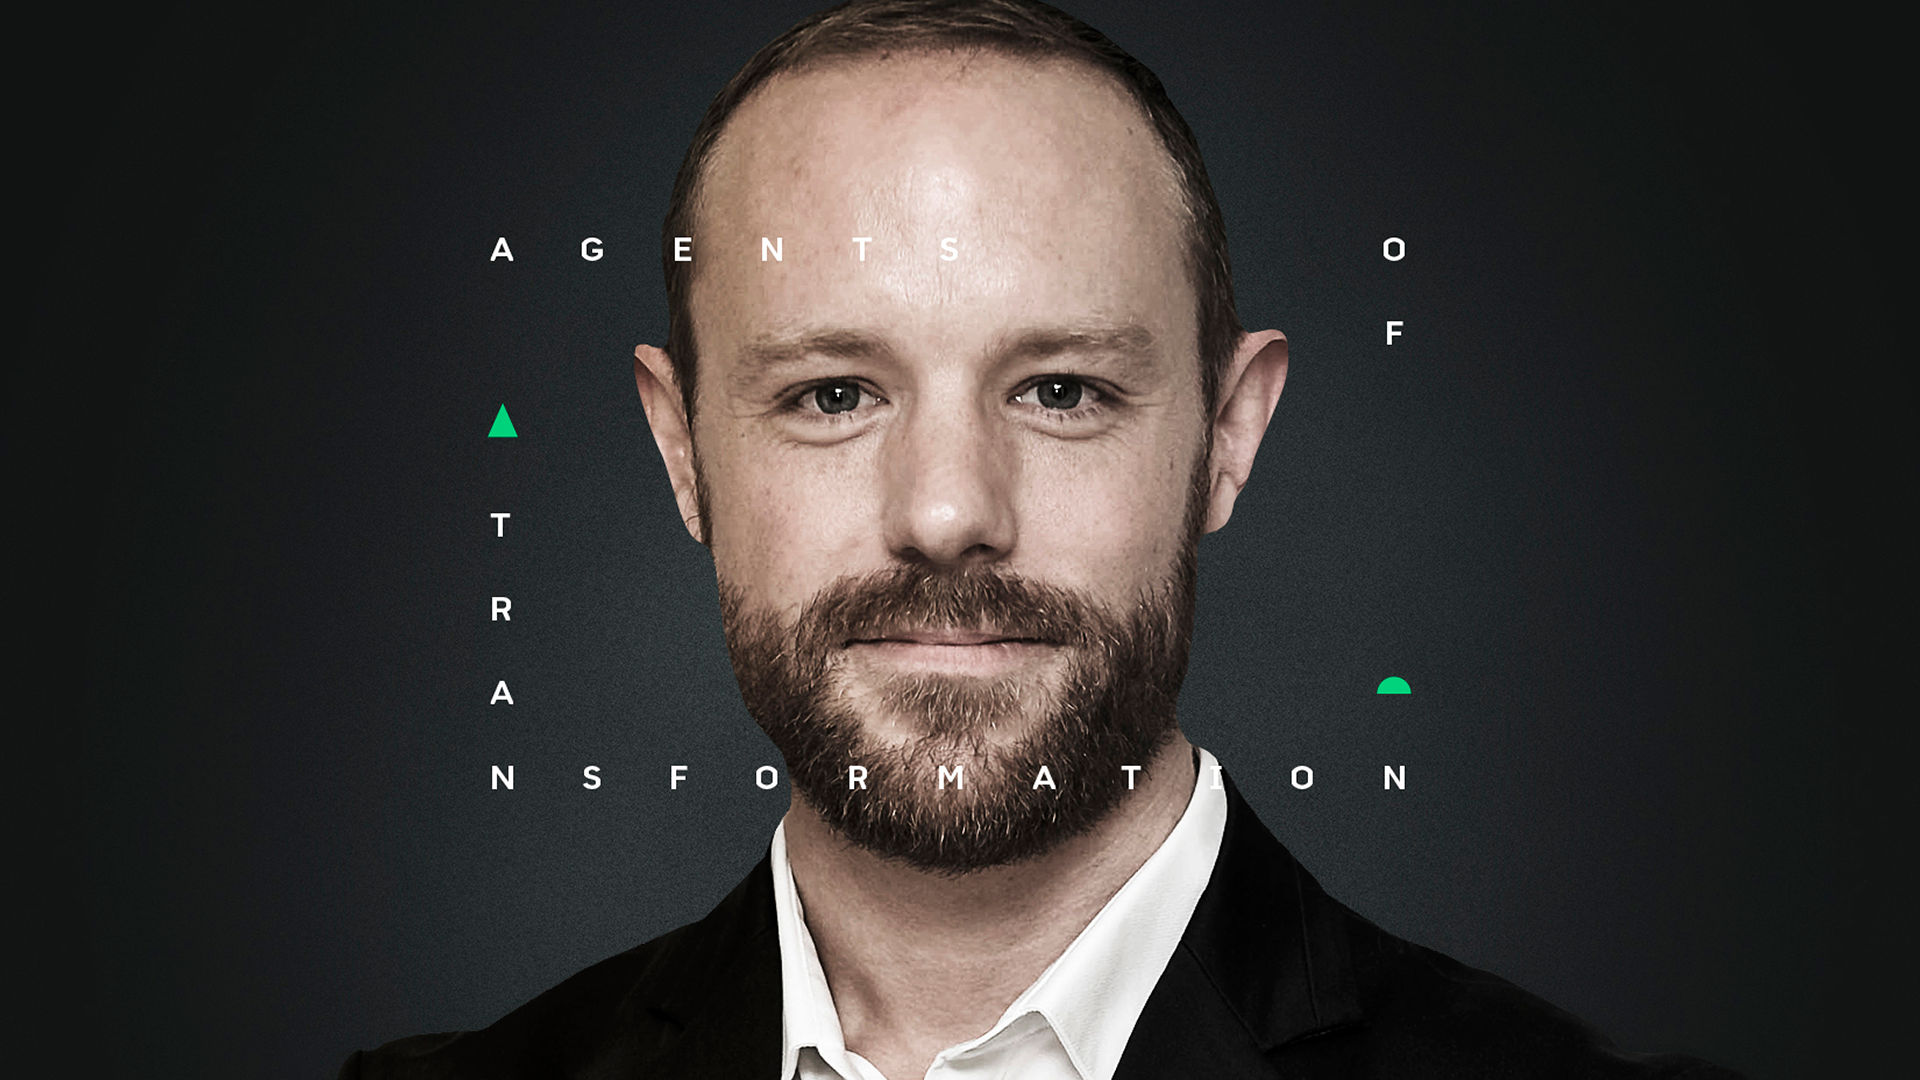 A headshot of a smartly dressed person, with Agents of Transformation text graphic placed ontop